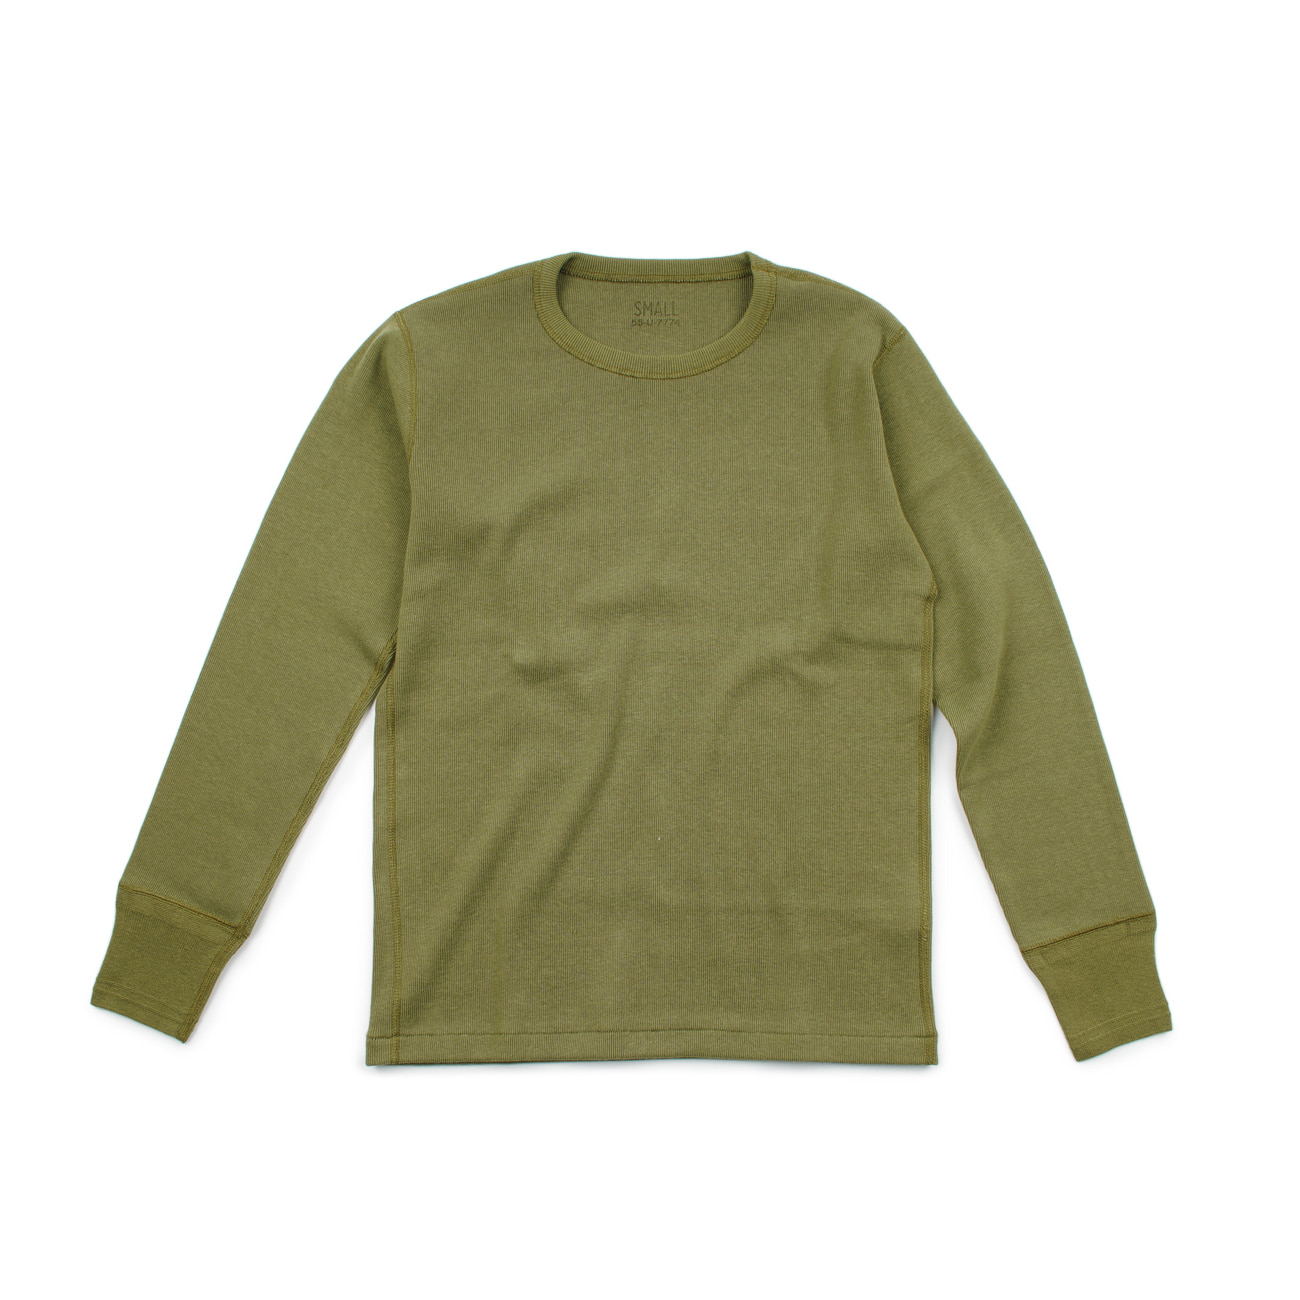 U.S.ARMY Undershirt